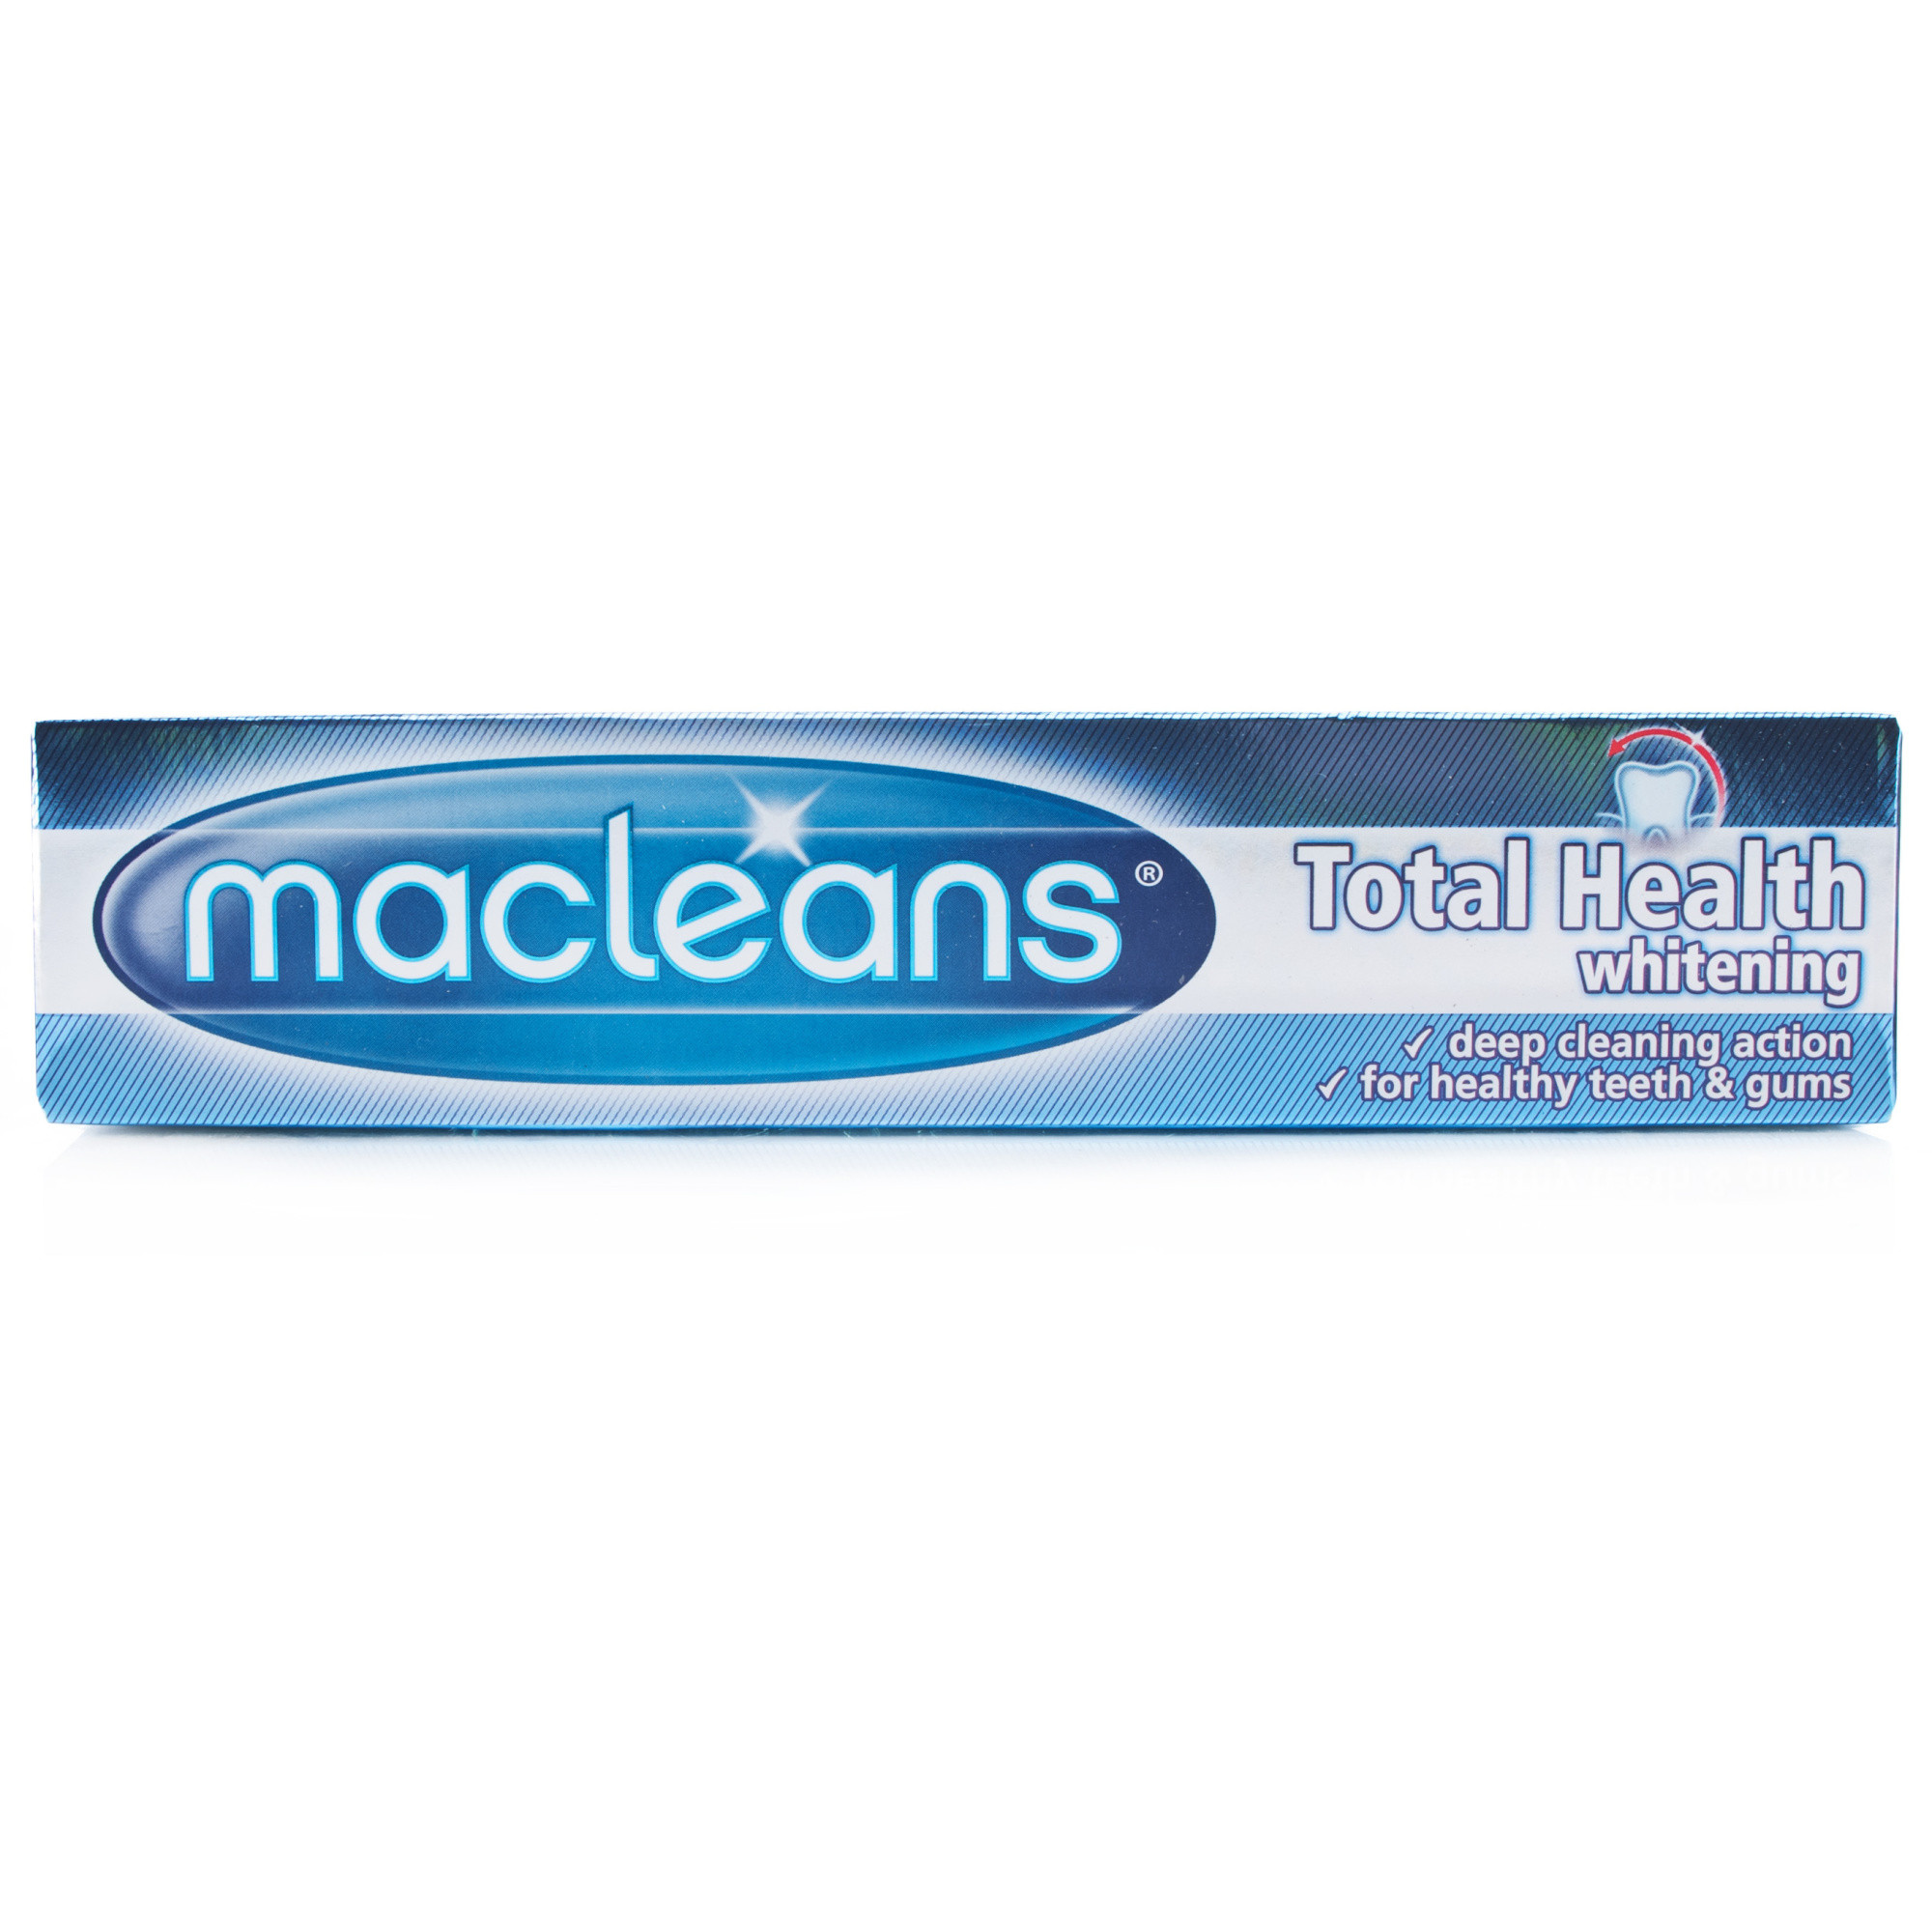 Macleans Total Health Whitening Toothpaste